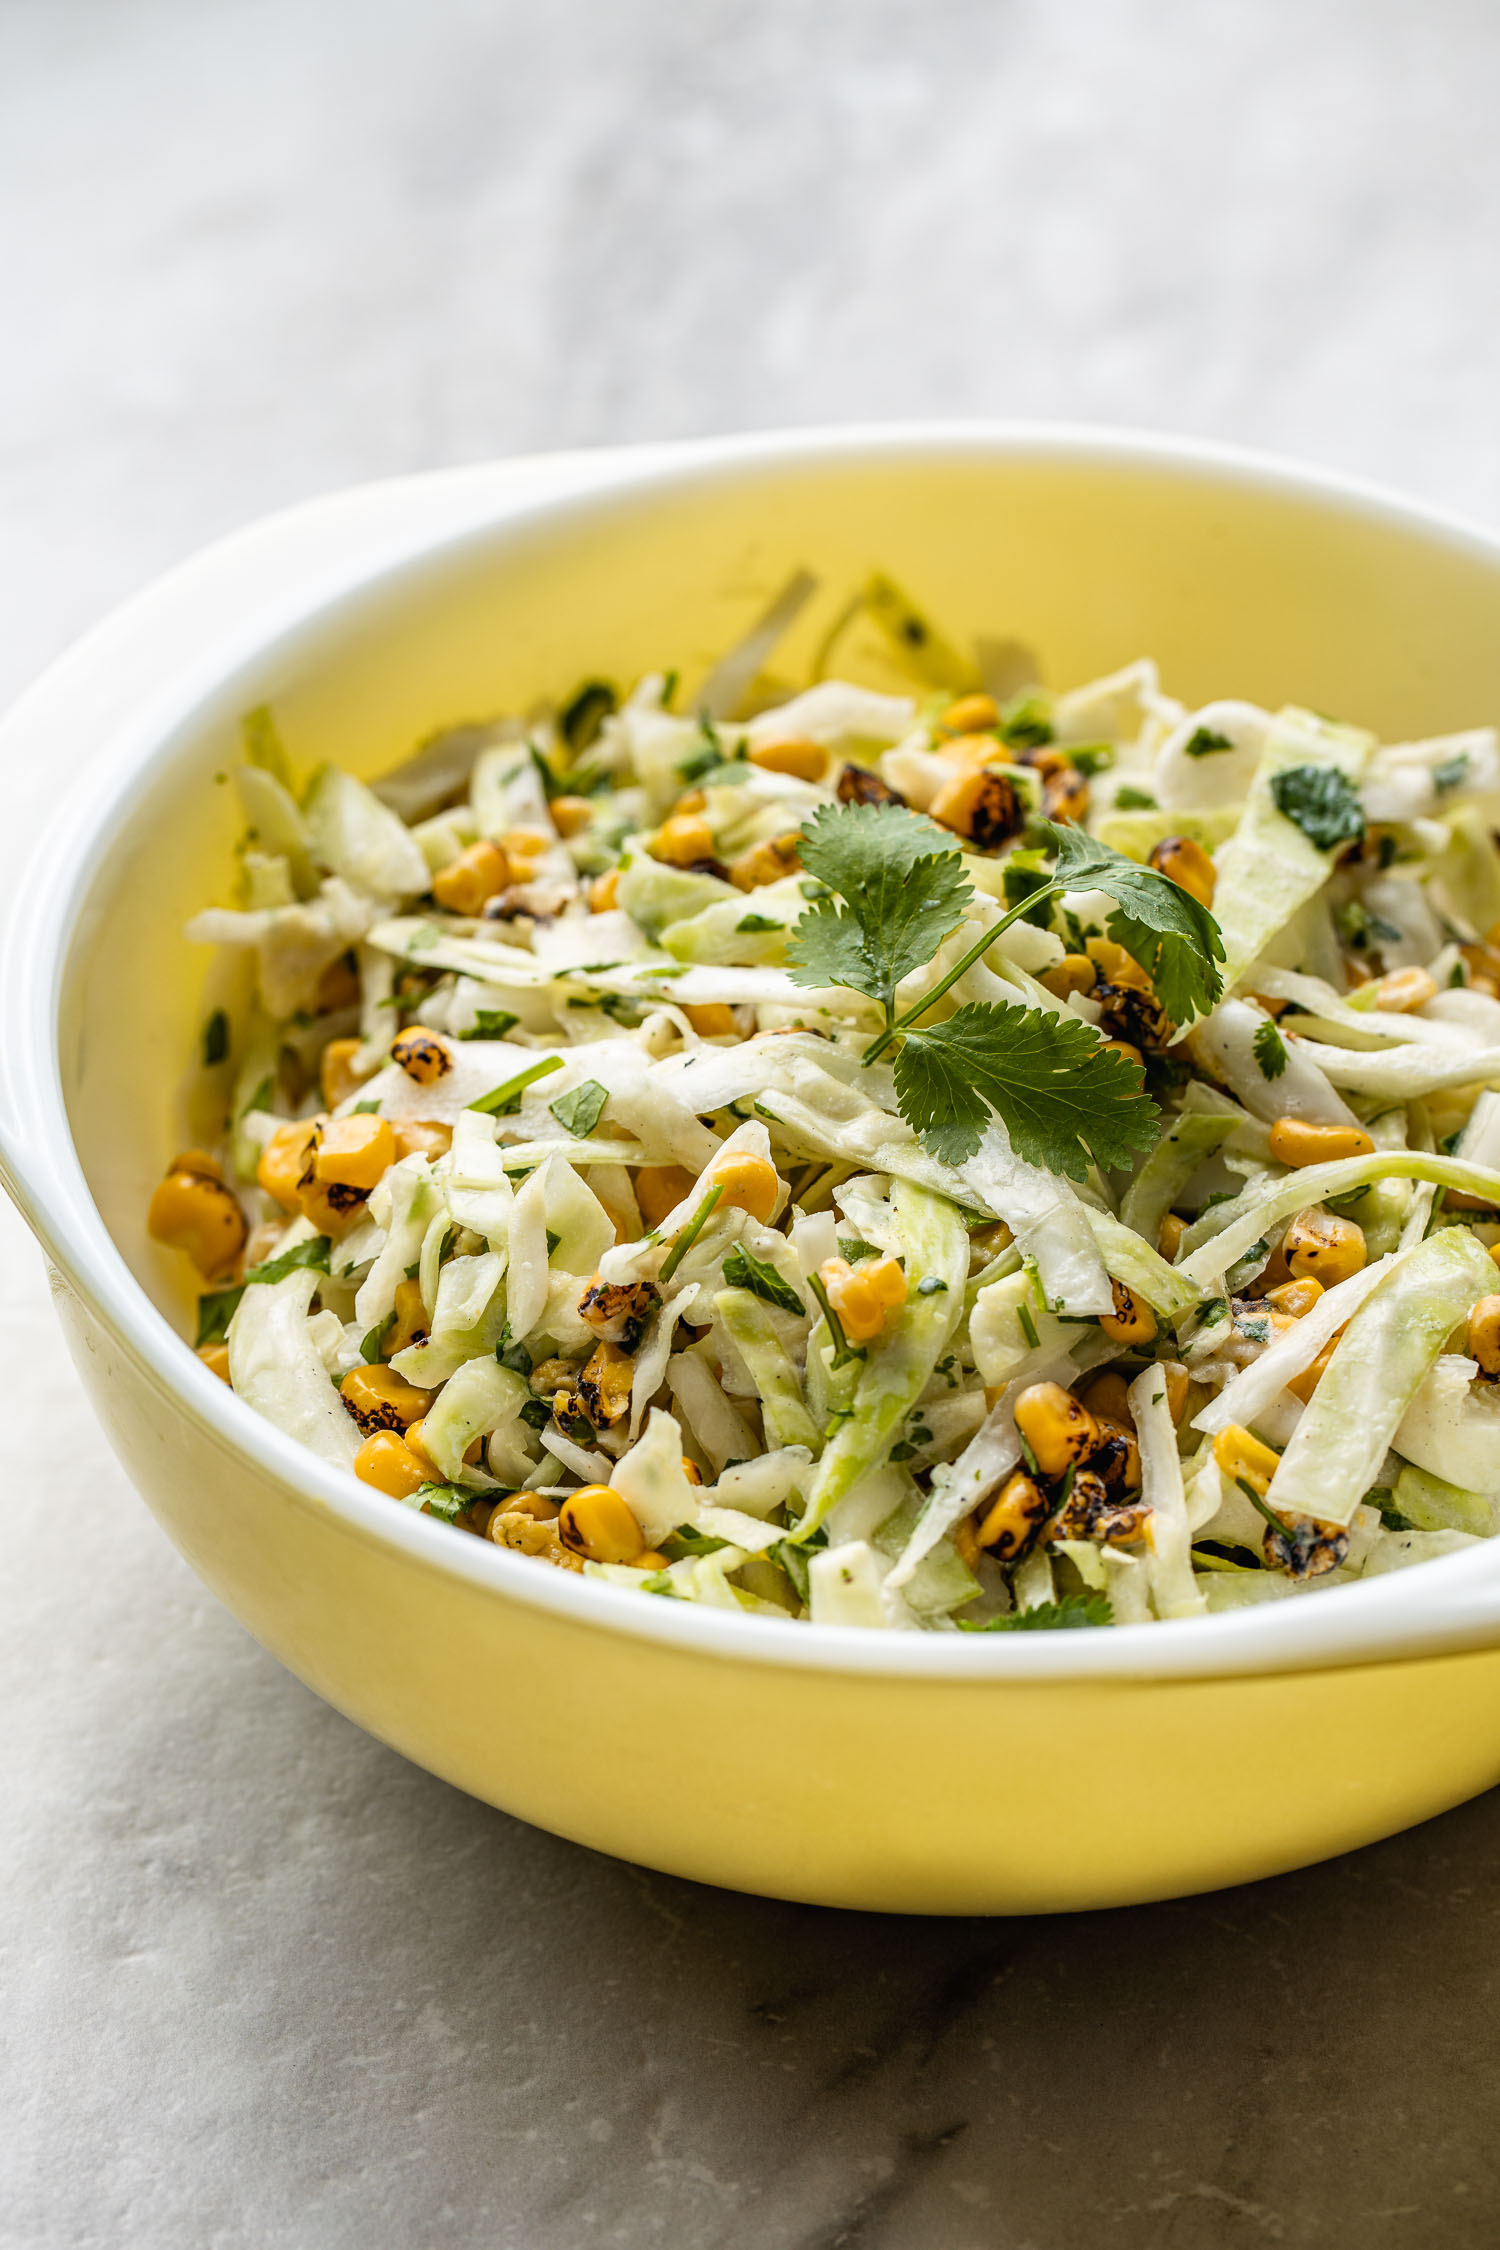 Mexican cabbage coleslaw with corn, cilantro, no mayo, on gray marble background, vintage mid century modern yellow bowl with handles